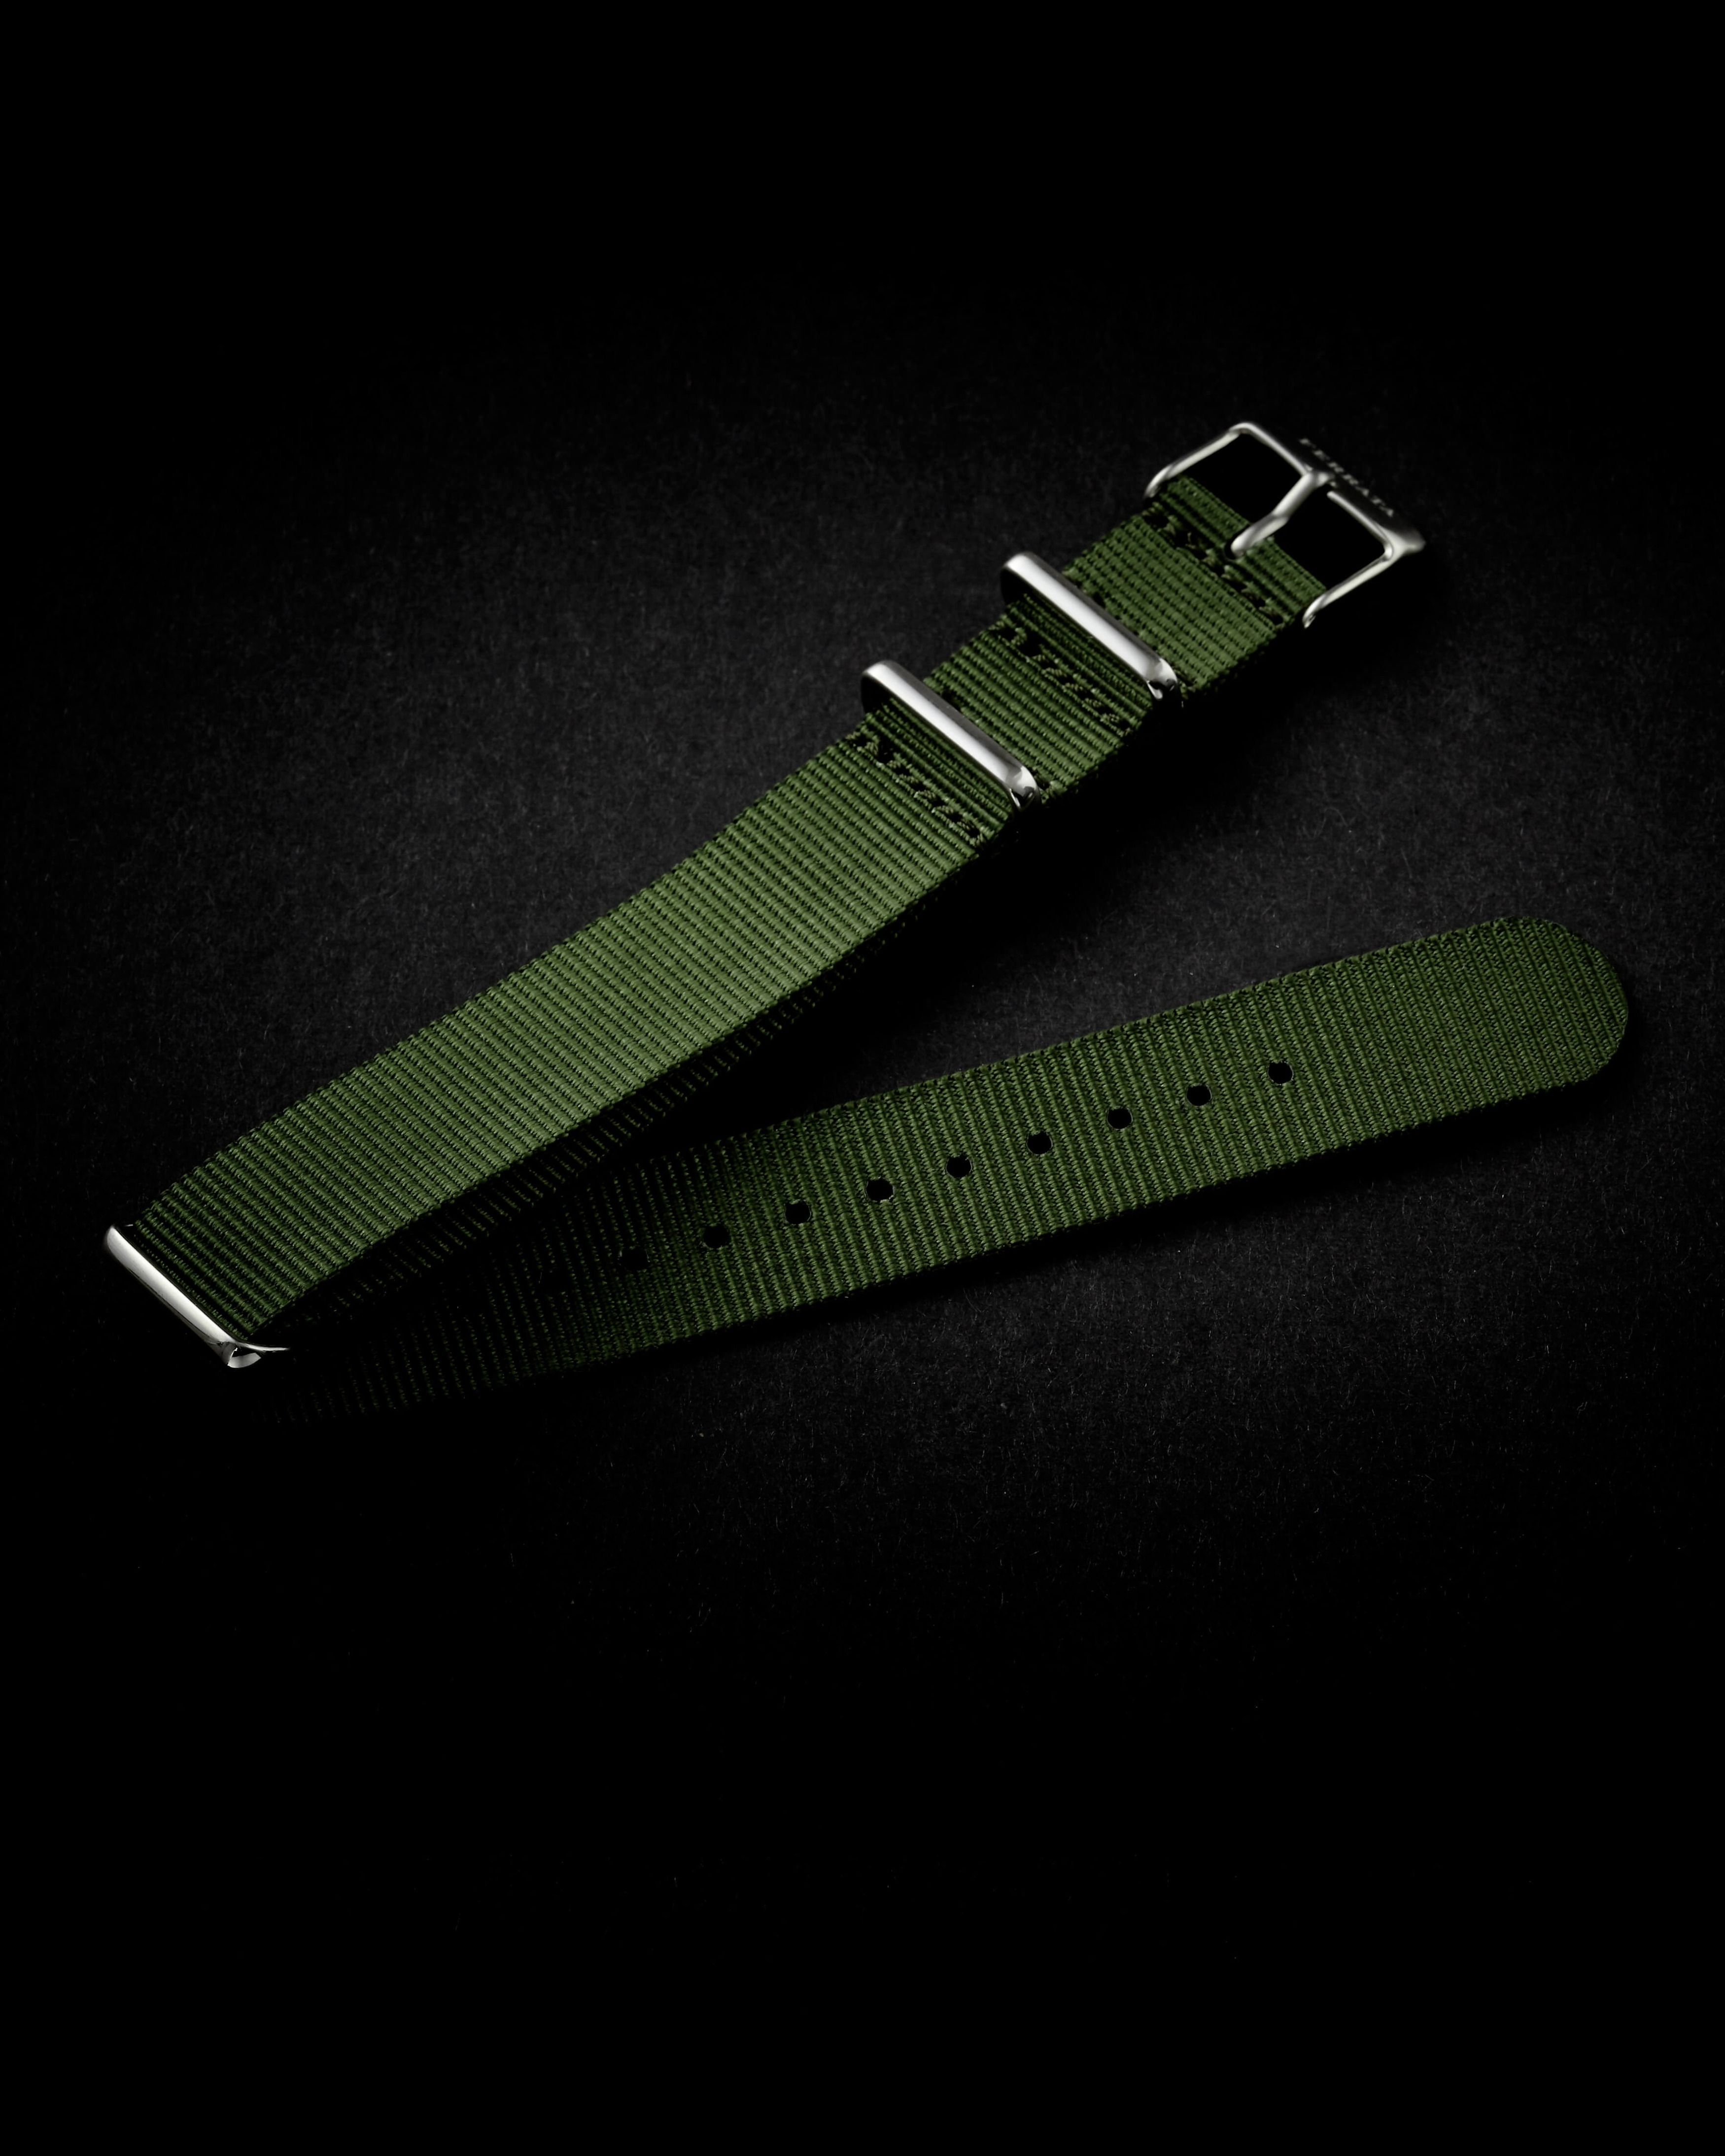 Green NATO strap 20 mm, silver buckle